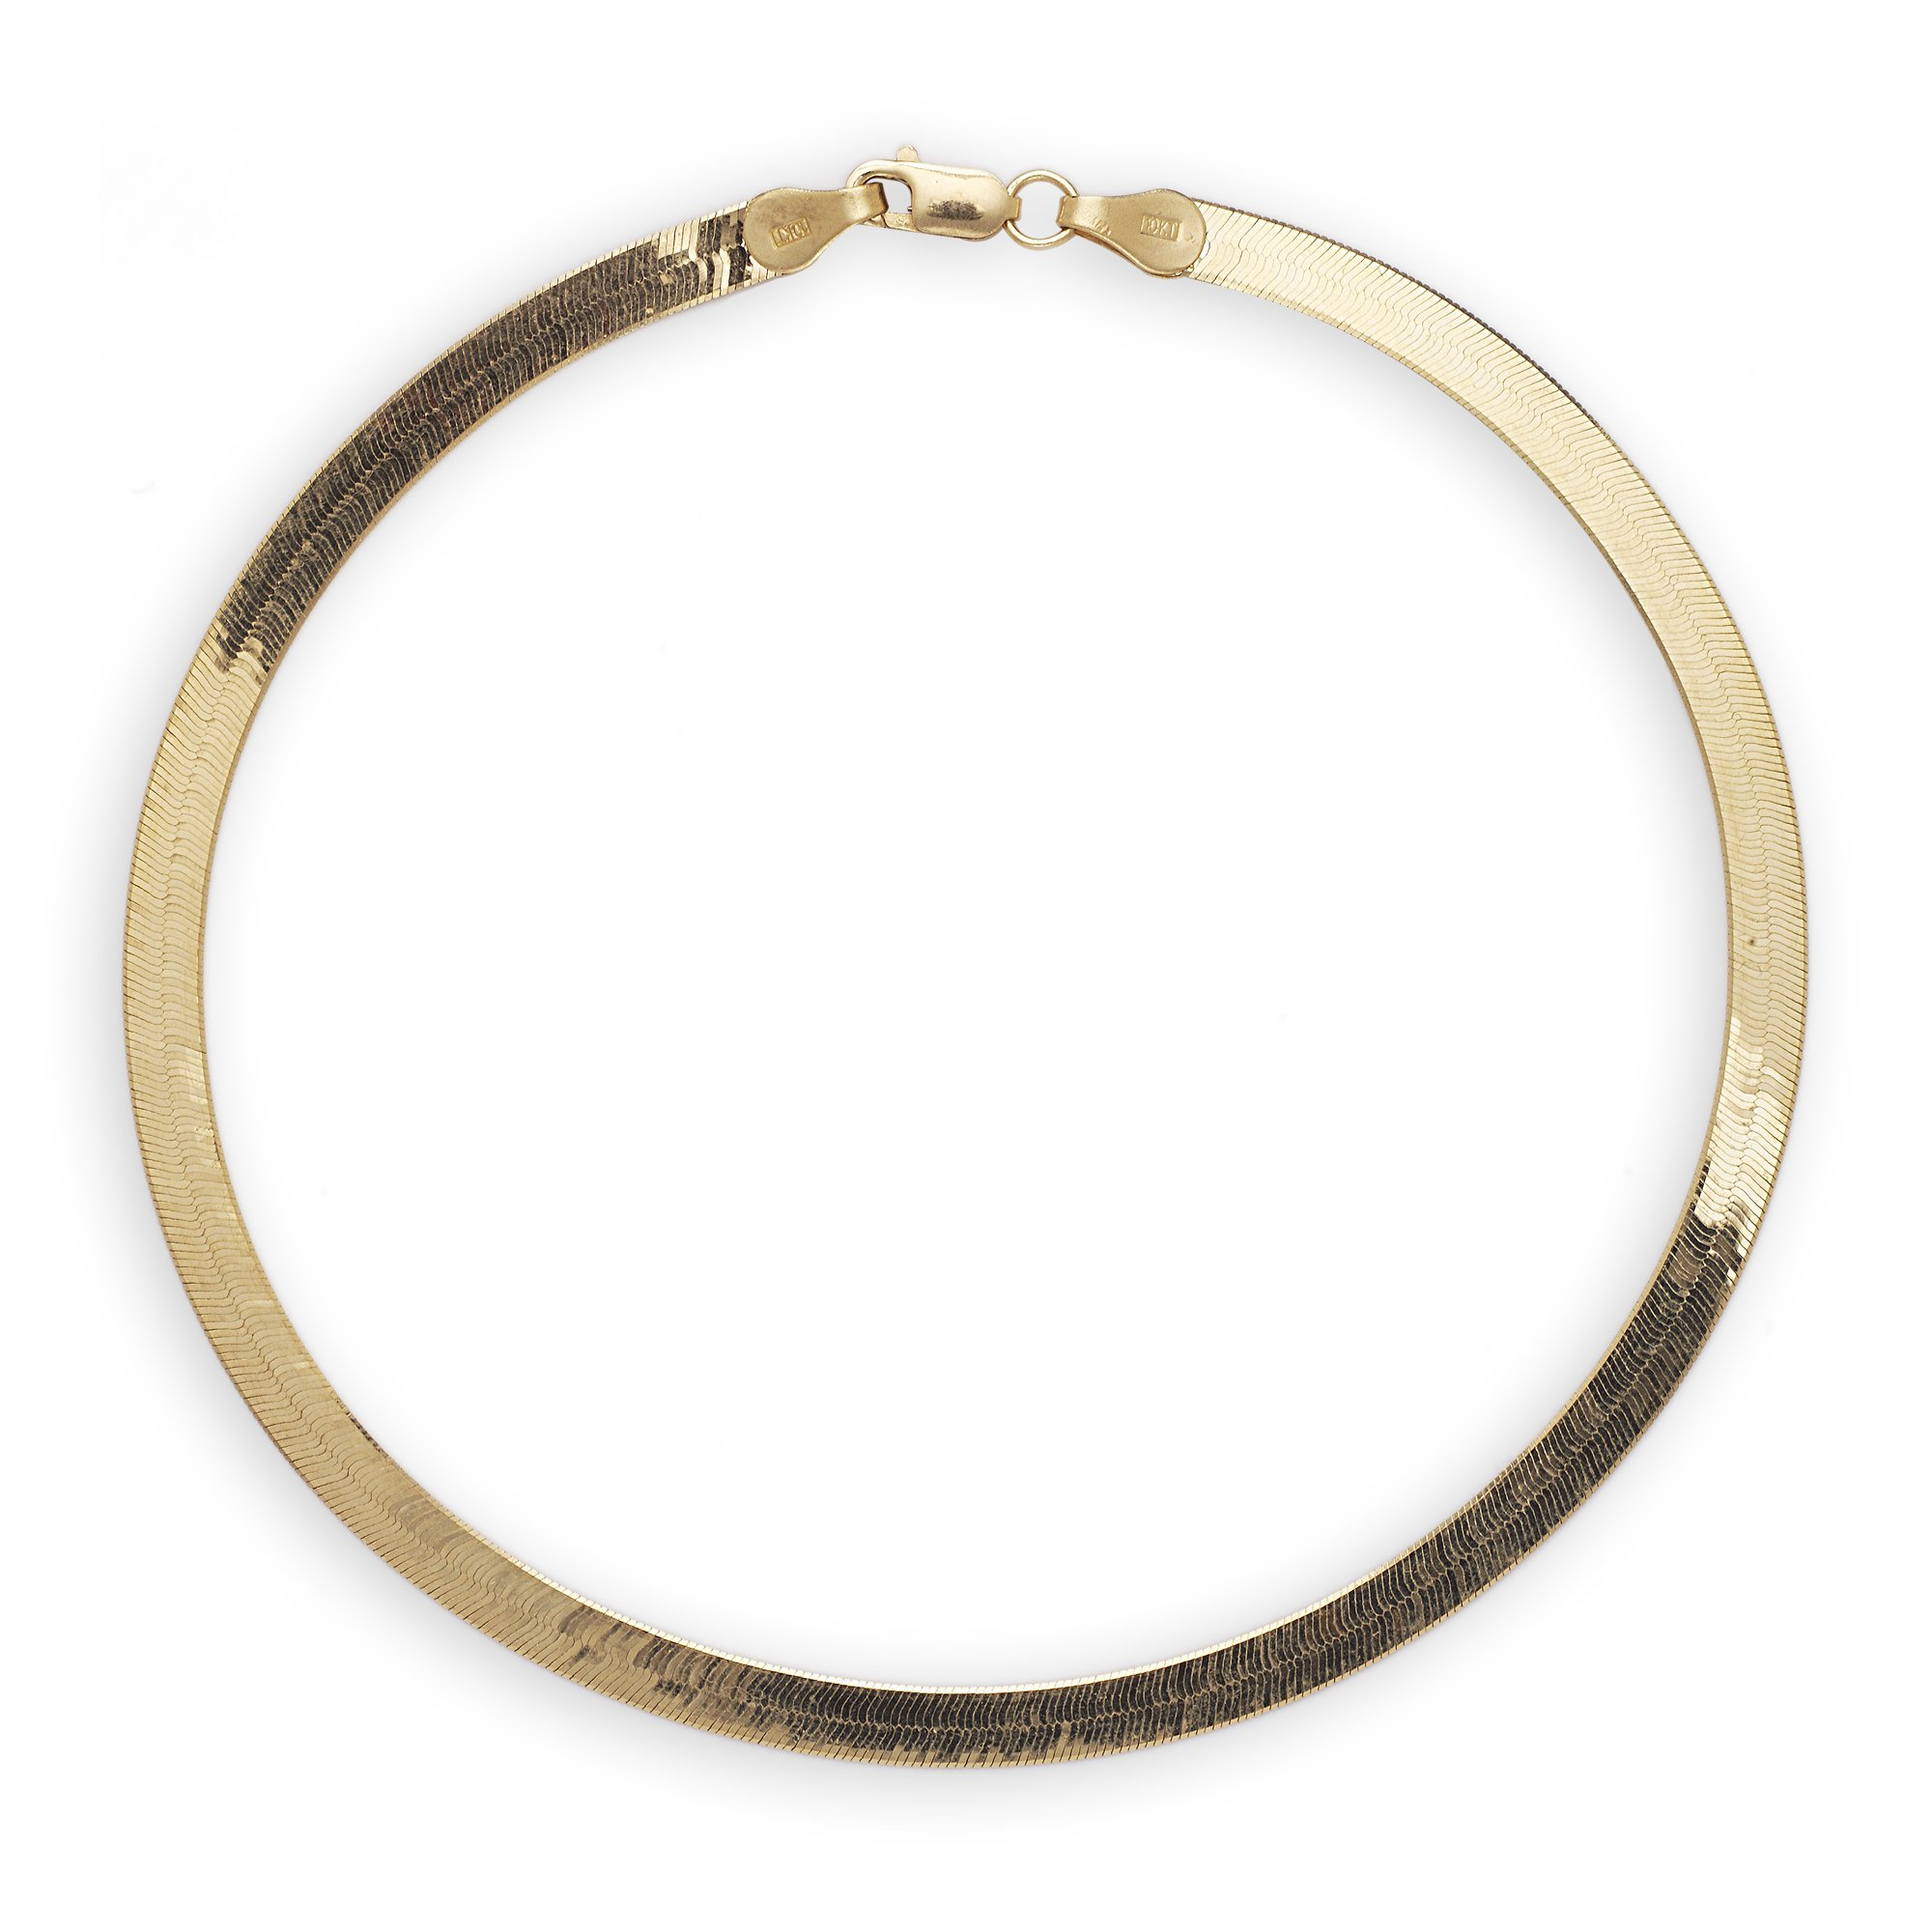 "8 Inch 10k Yellow Gold Super Flexible Silky Herringbone Chain Bracelet, 0.16"" (4mm)"